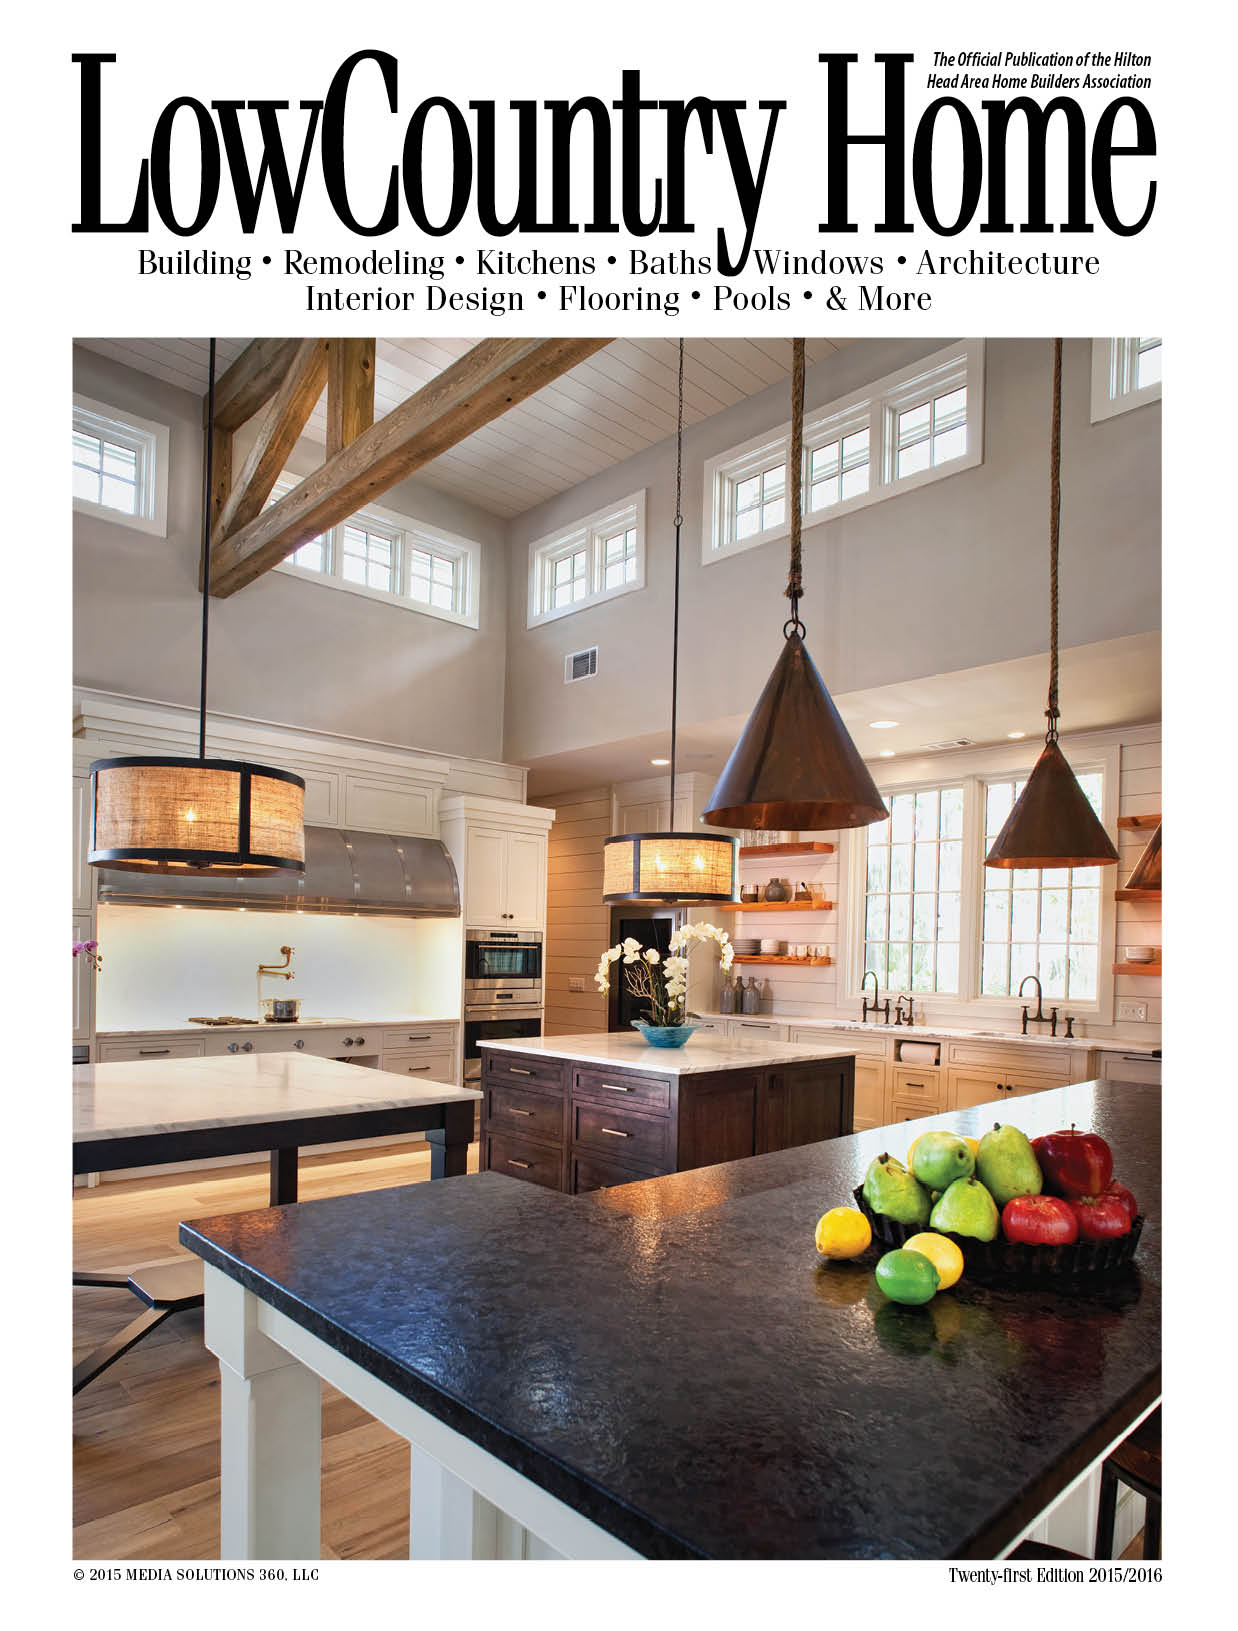 LowCountry Home Magazine | Hilton Head Area Home Builders ...